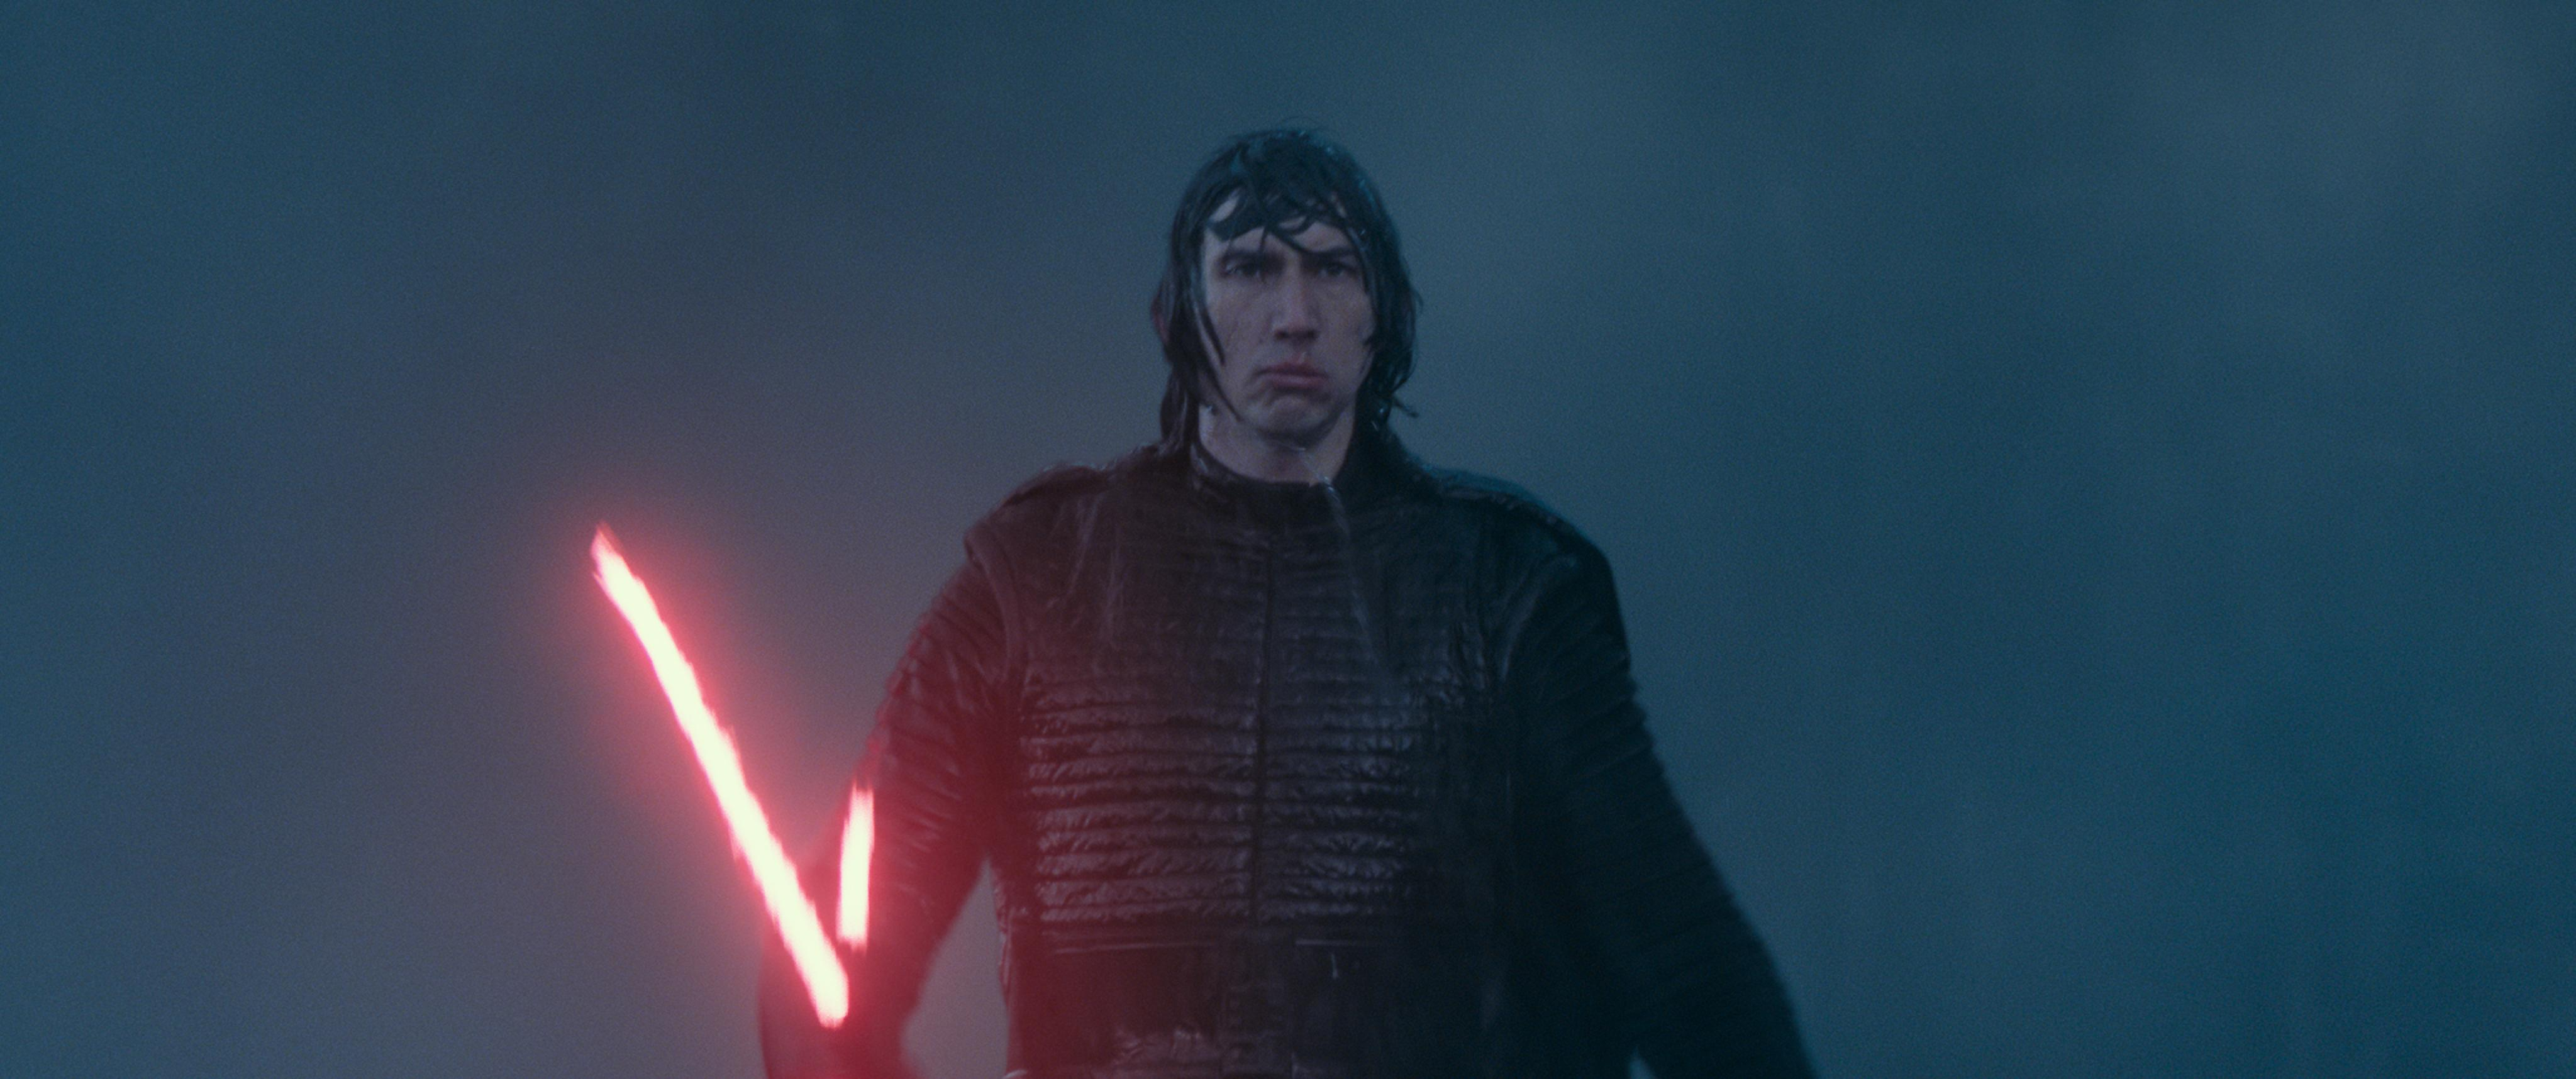 Mixed reviews land for 'Star Wars: The Rise of Skywalker'